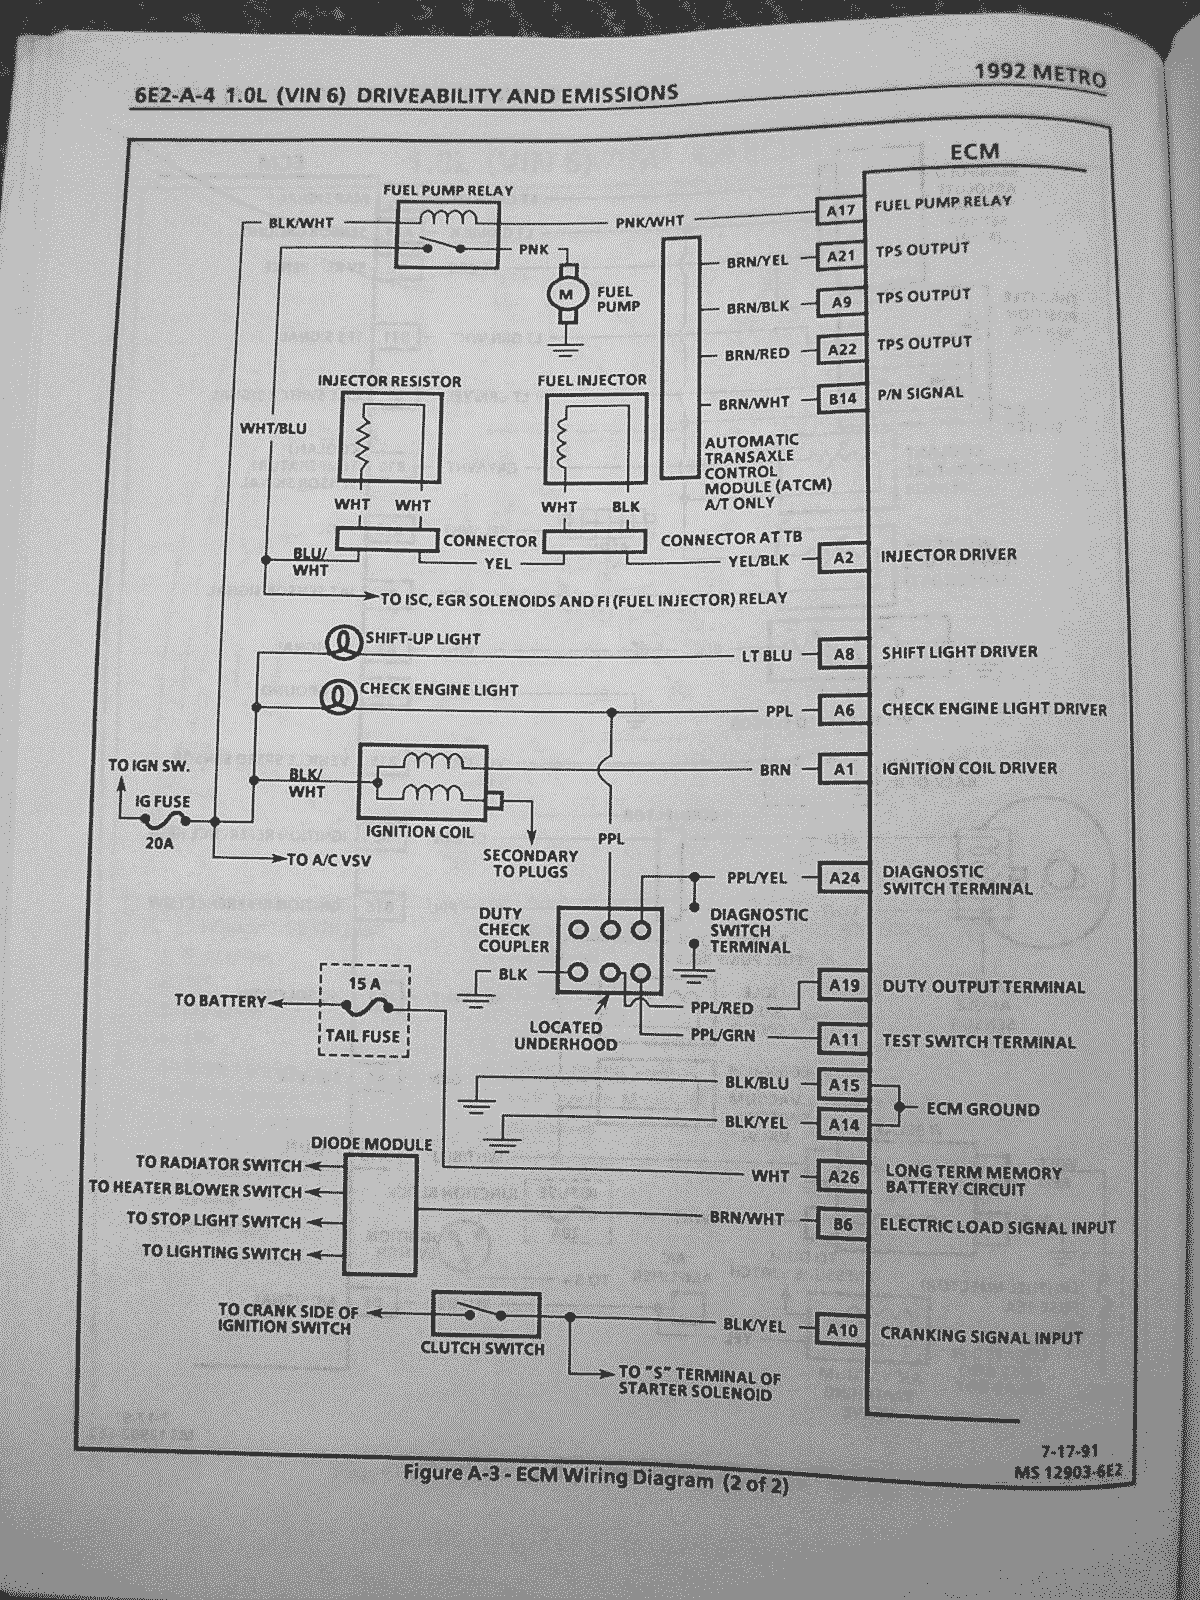 6e2 a 4 geo metro and suzuki swift wiring diagrams metroxfi com Wiring-Diagram 1995 Geo Metro at virtualis.co